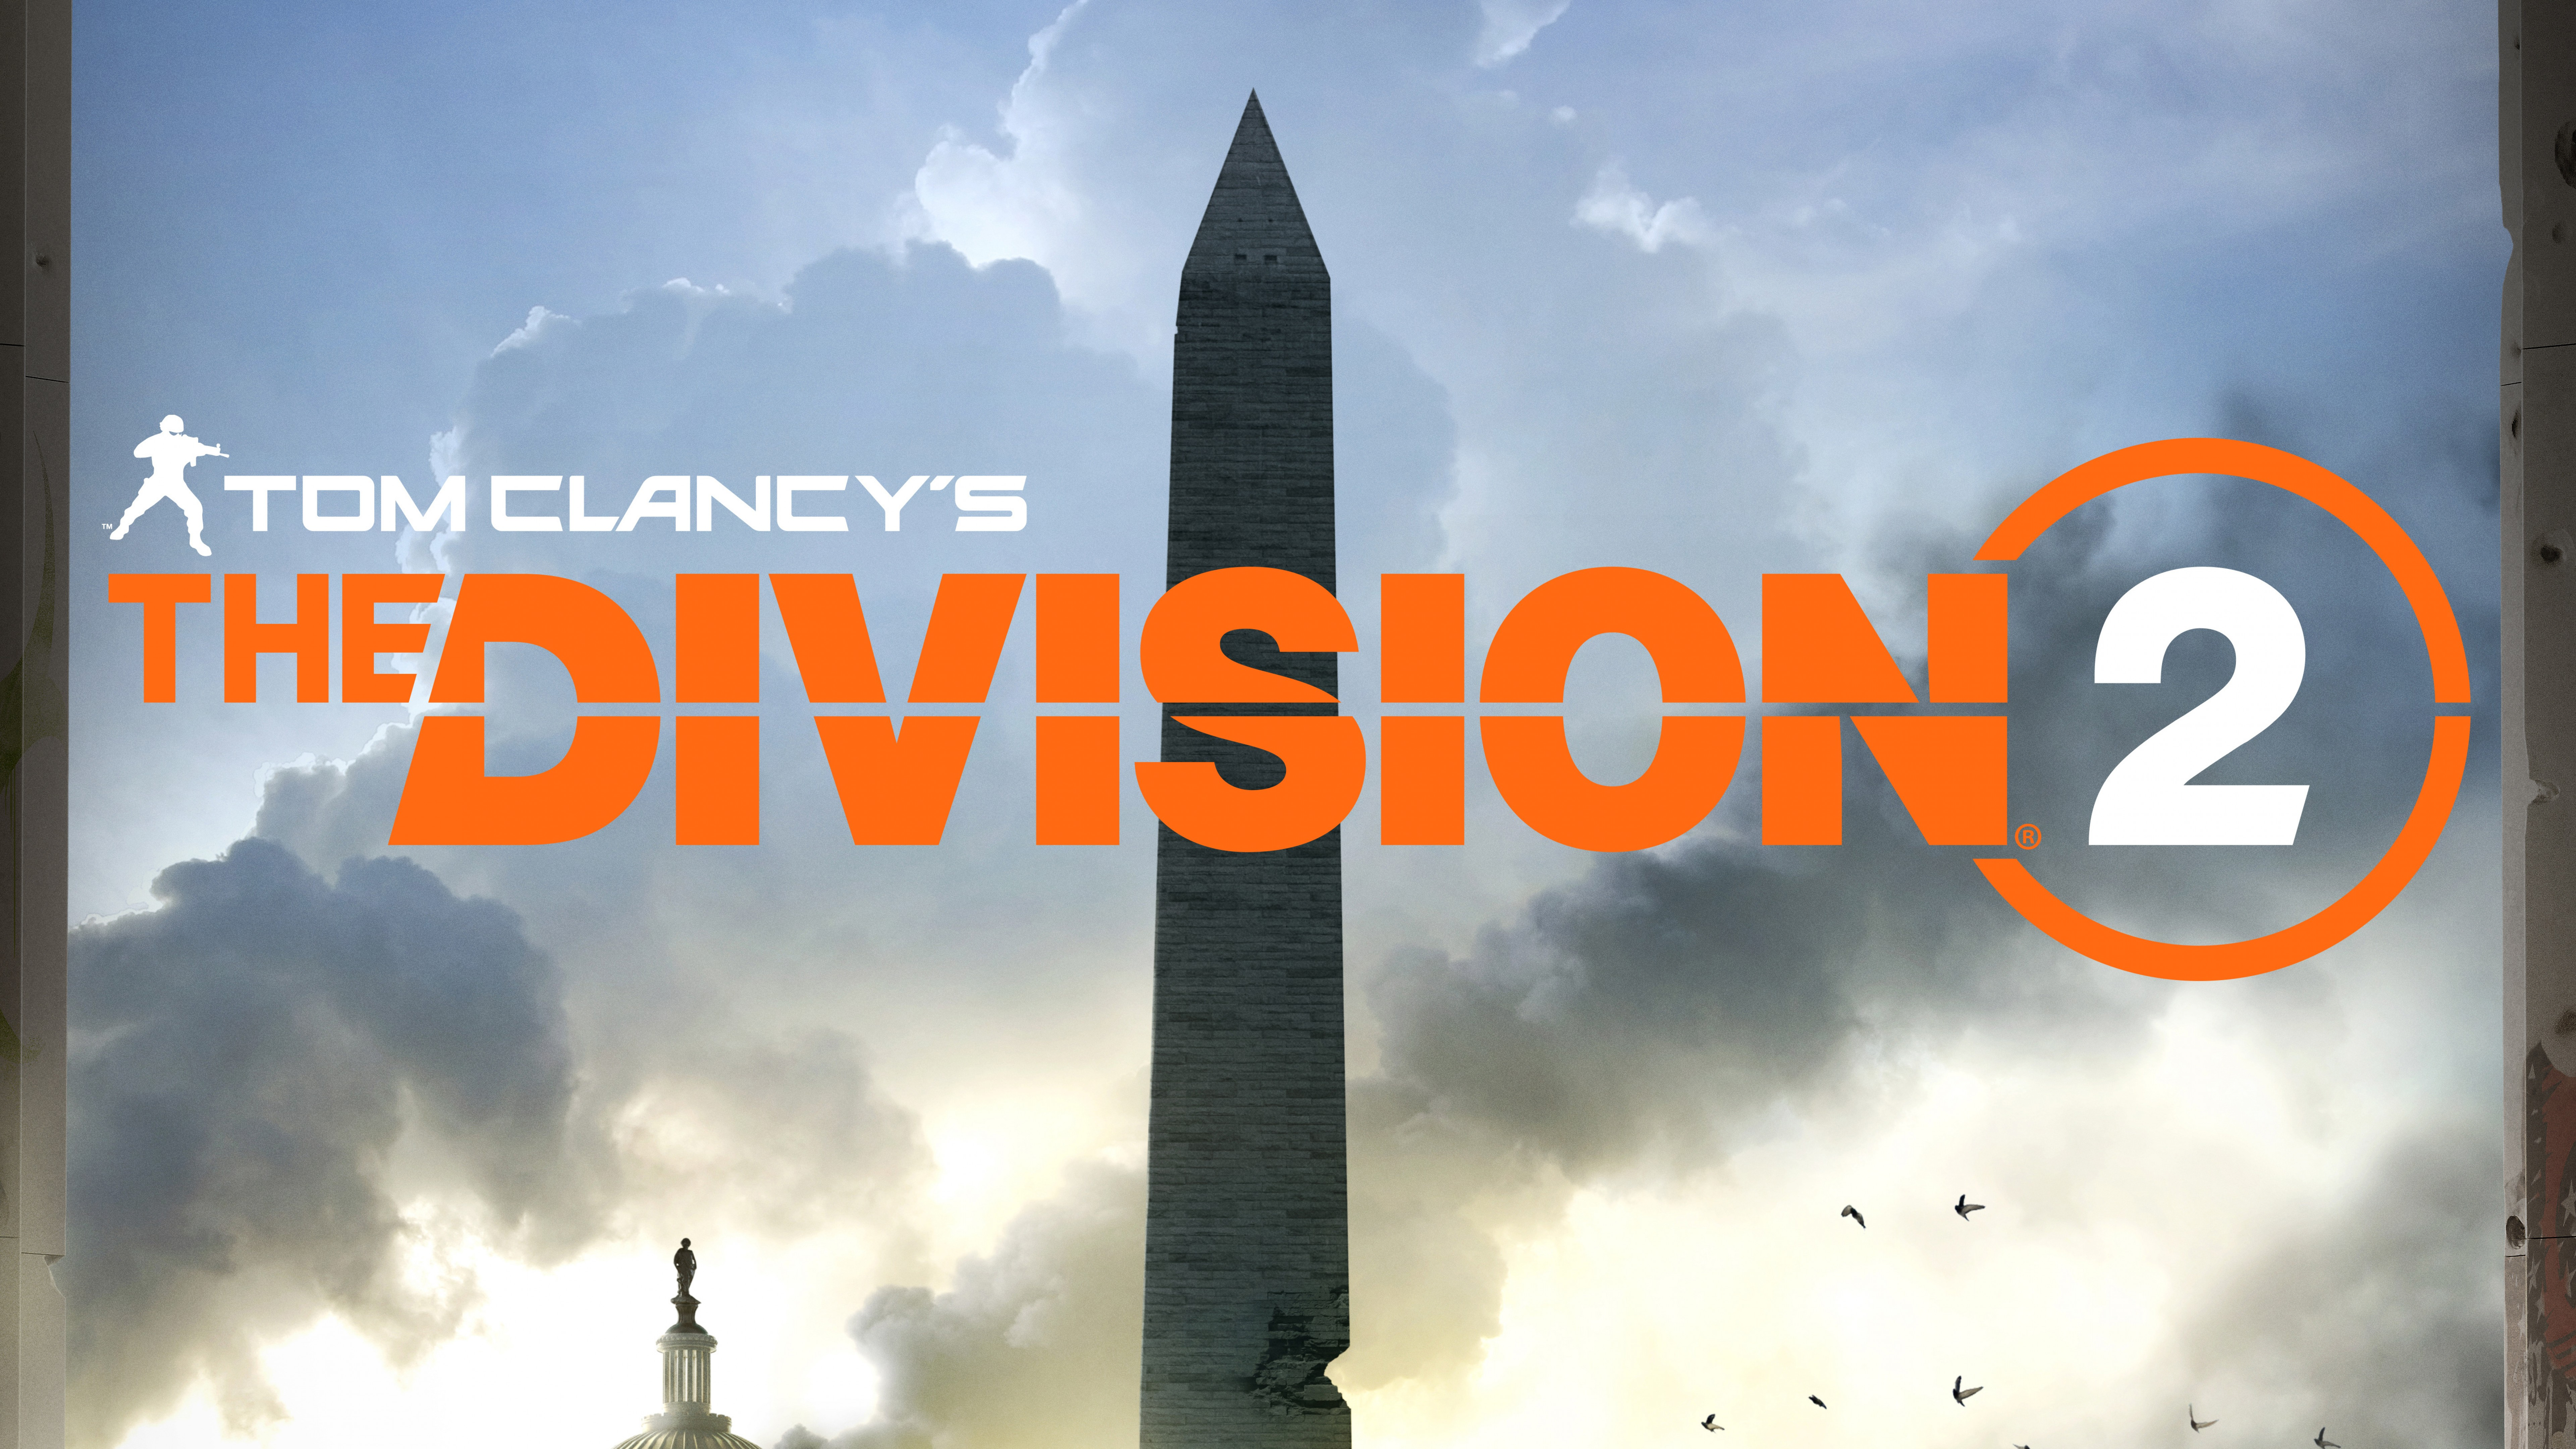 Wallpaper Tom Clancy S The Division 2 E3 2018 Poster 4k